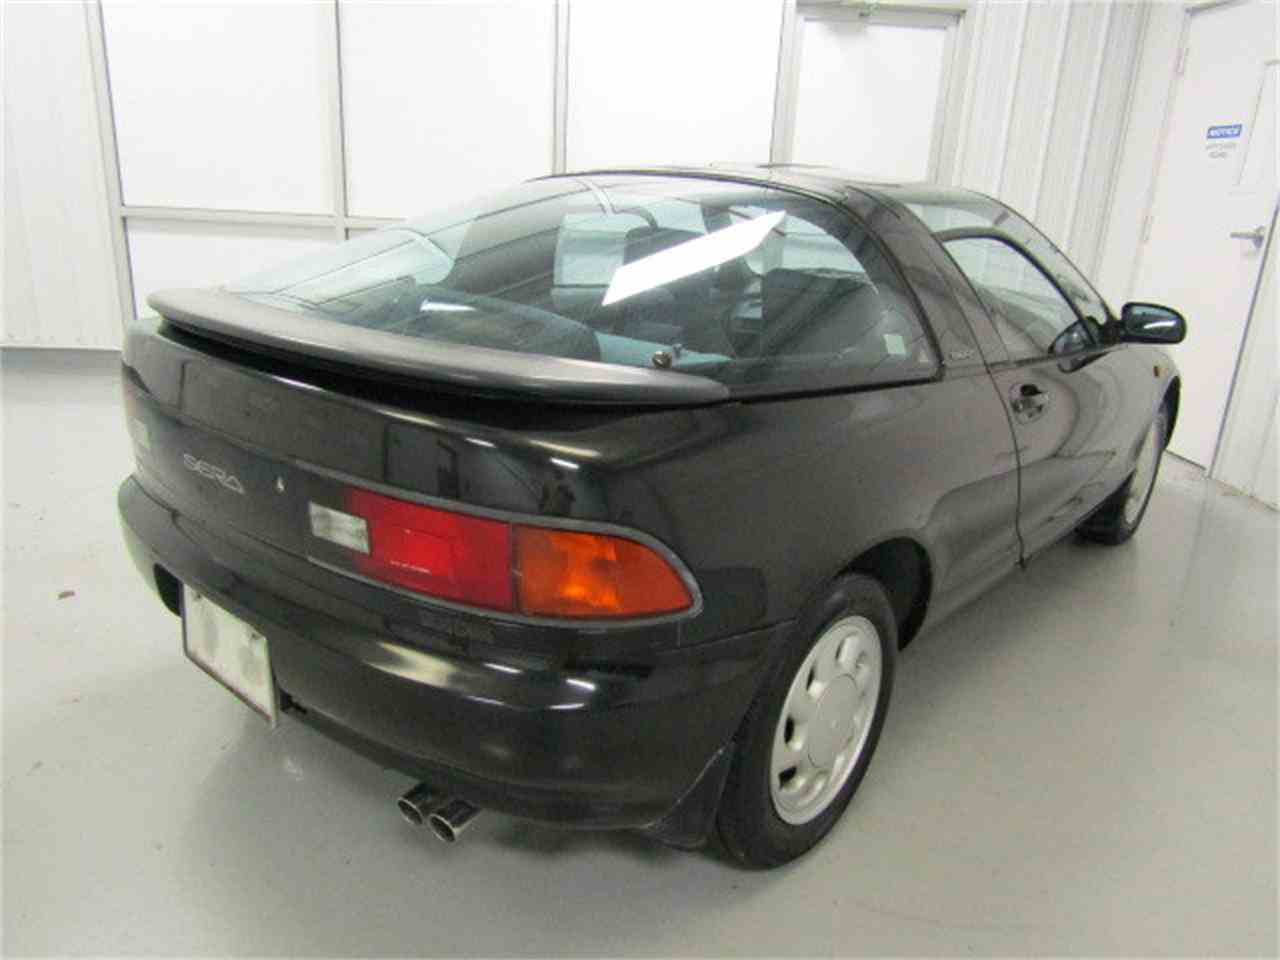 Large Picture of '91 Toyota Sera - $8,956.00 Offered by Duncan Imports & Classic Cars - JL5F